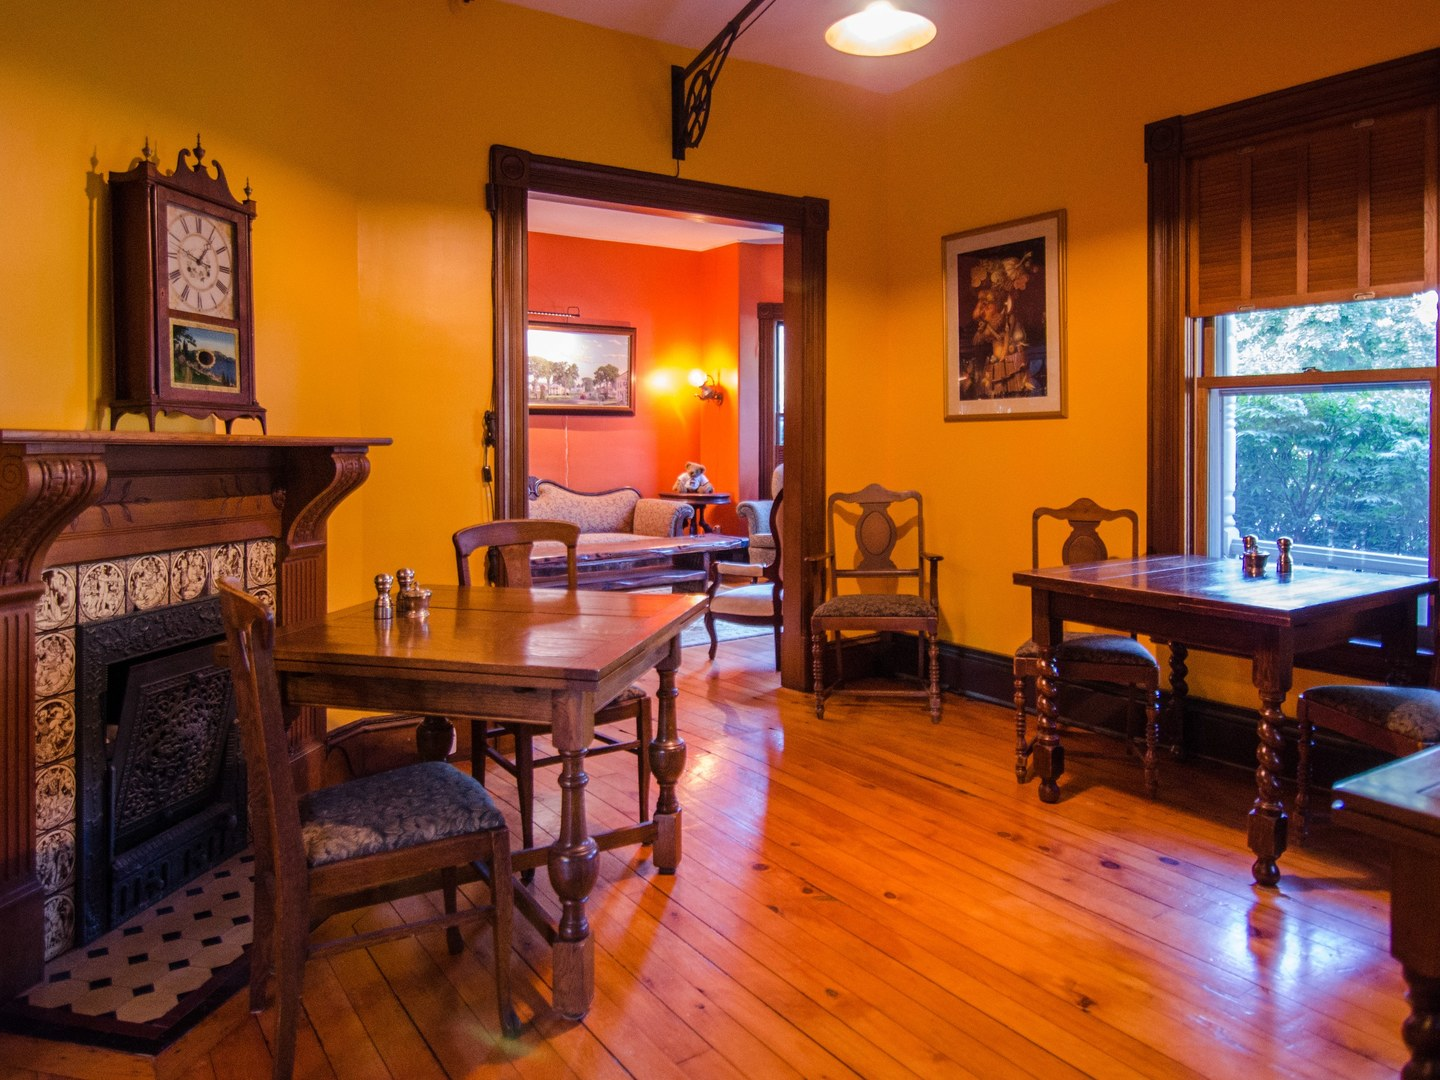 A living room filled with furniture and a large window at Heart of the Village Inn, Modern Vermont Bed & Breakfast.